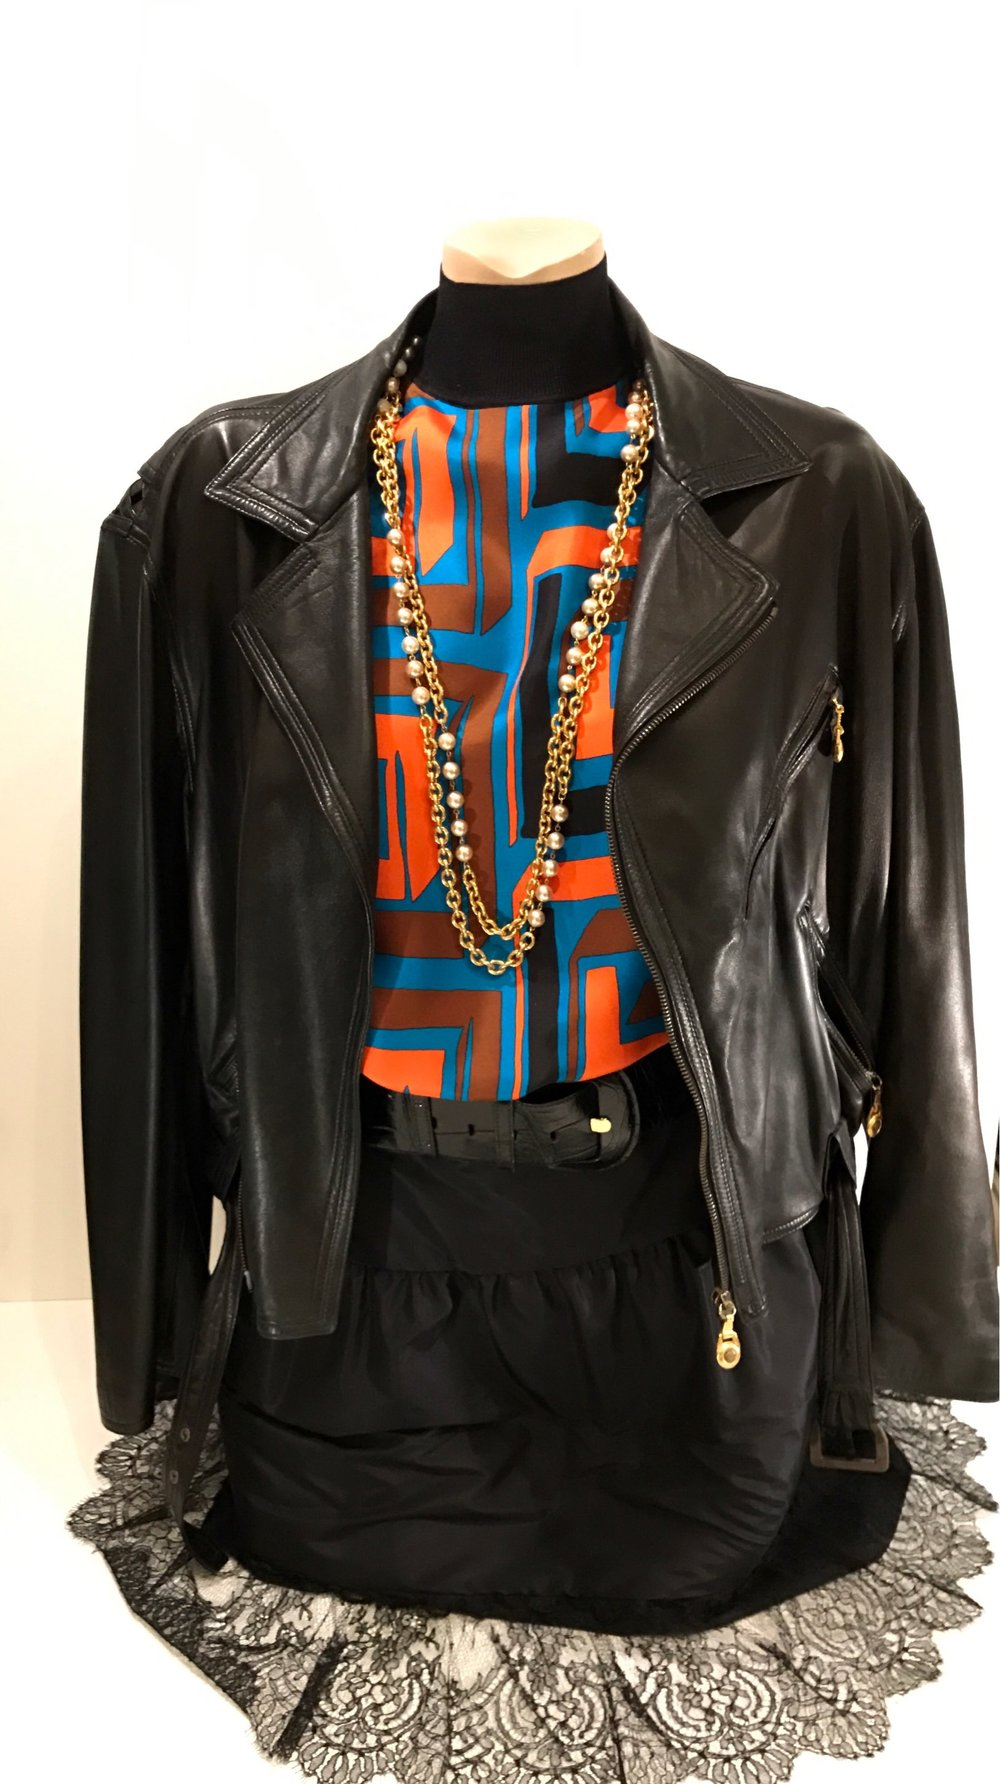 Vintage 1989 Versace silk top w Vintage Chanel Necklace